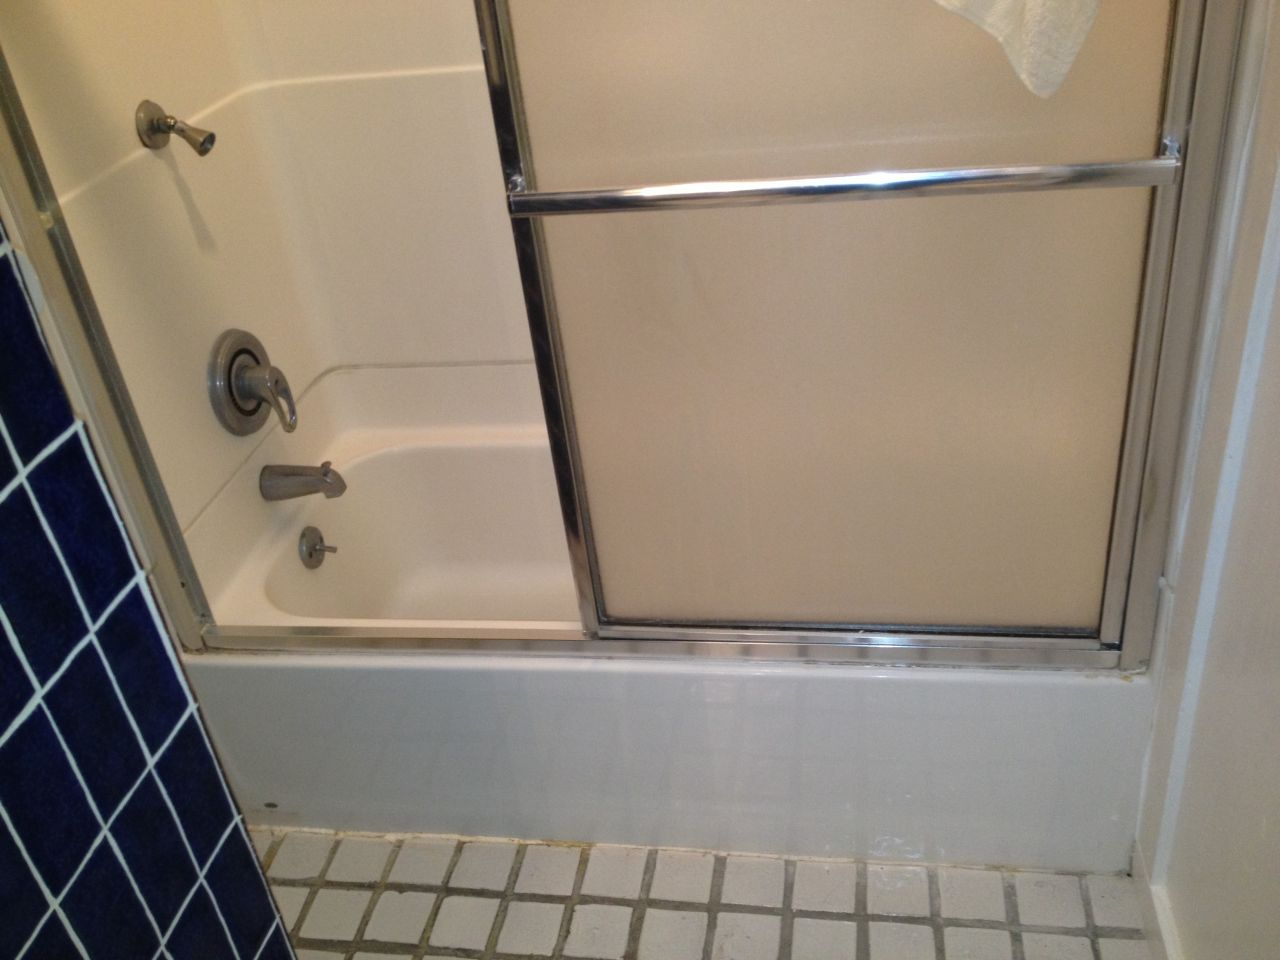 Pretty Cleaning Bathroom With Bleach And Water Small Kitchen And Bath Tile Flooring Regular Ugly Bathroom Tile Cover Up Clean The Bathroom With Vinegar And Baking Soda Young Renovation Ideas For A Small Bathroom YellowLowe S Canada Bathroom Cabinets Colored Glass Block Shower \u0026amp; Partition Walls In A Condo Remodeling ..